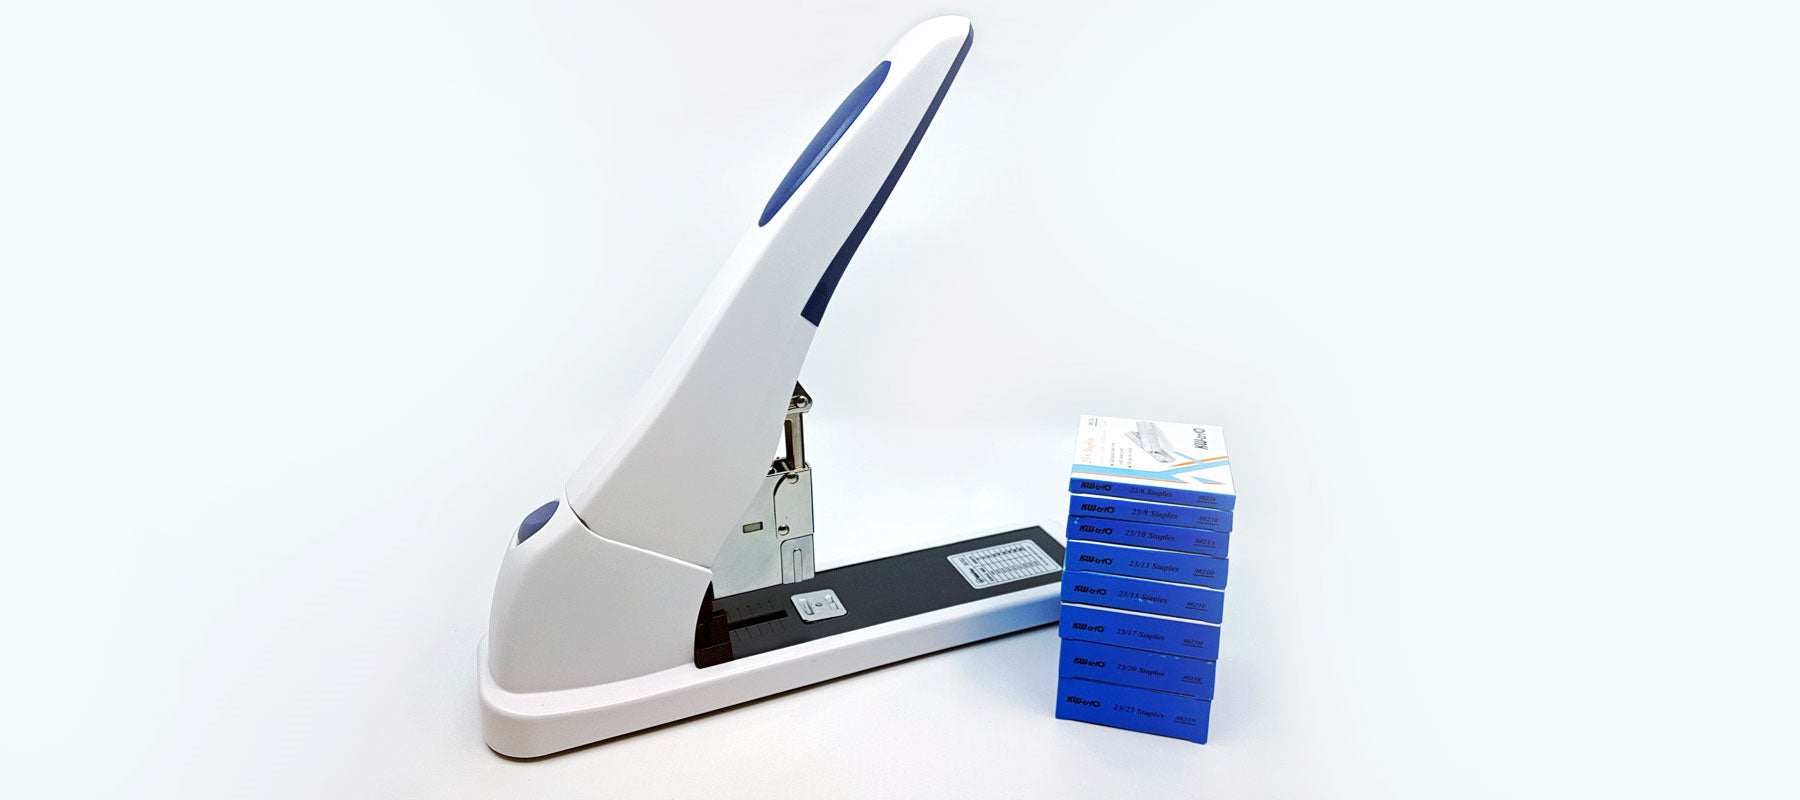 Warrior Heavy Duty Pad Stapler + FREE Staples